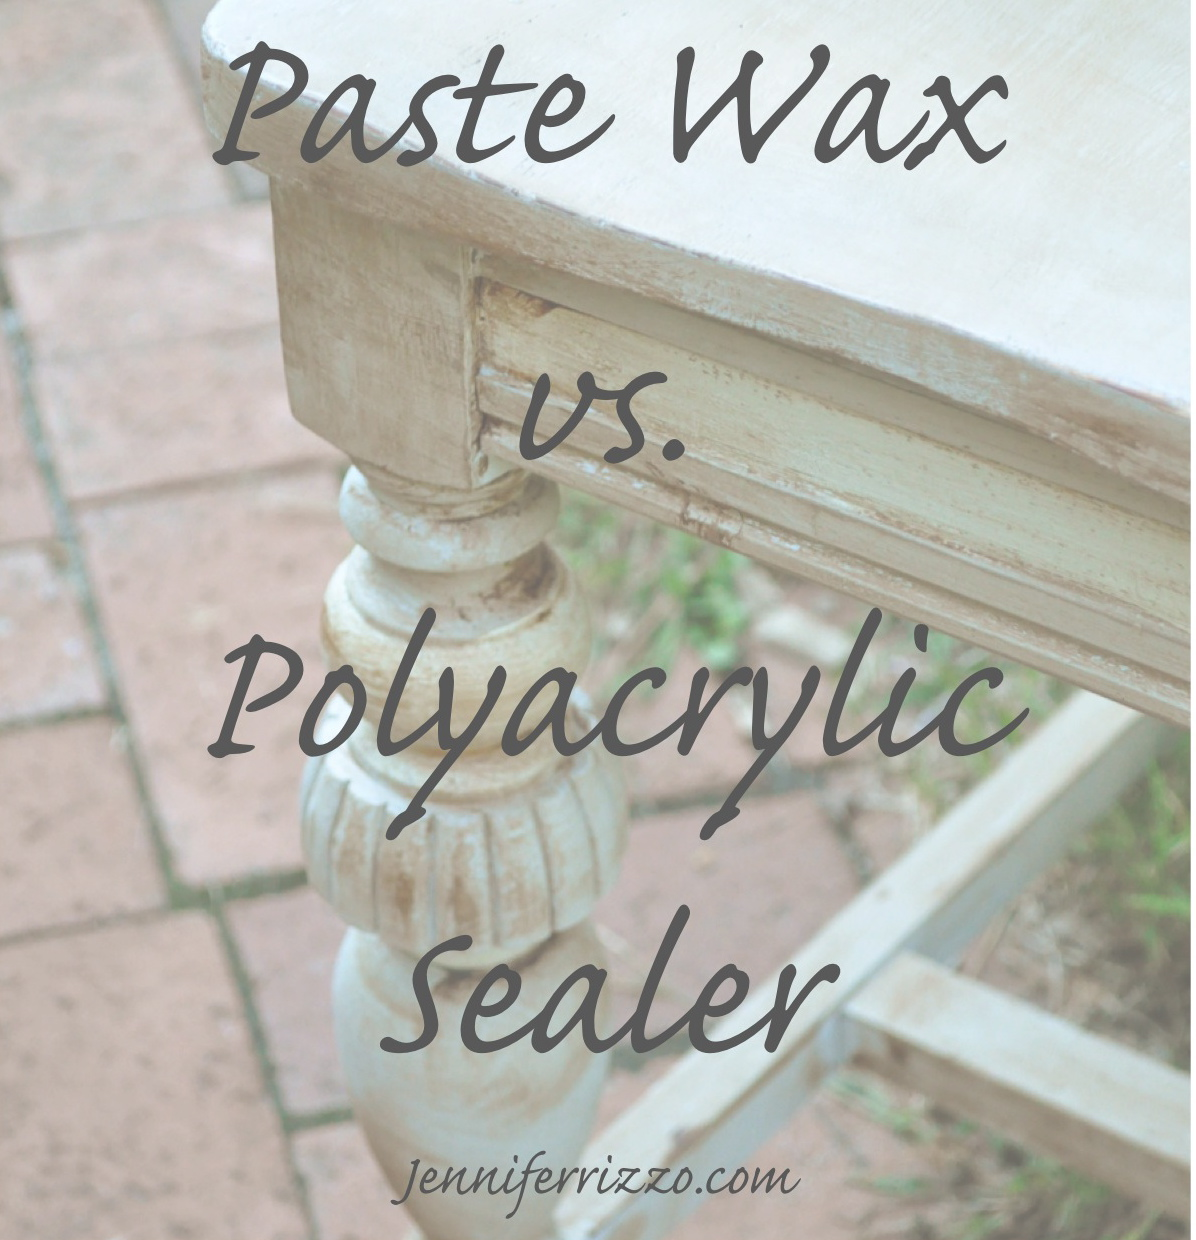 What Is The Best Way To Finsh Your Piece Of Furniture?Polyacrylic Vs.paste